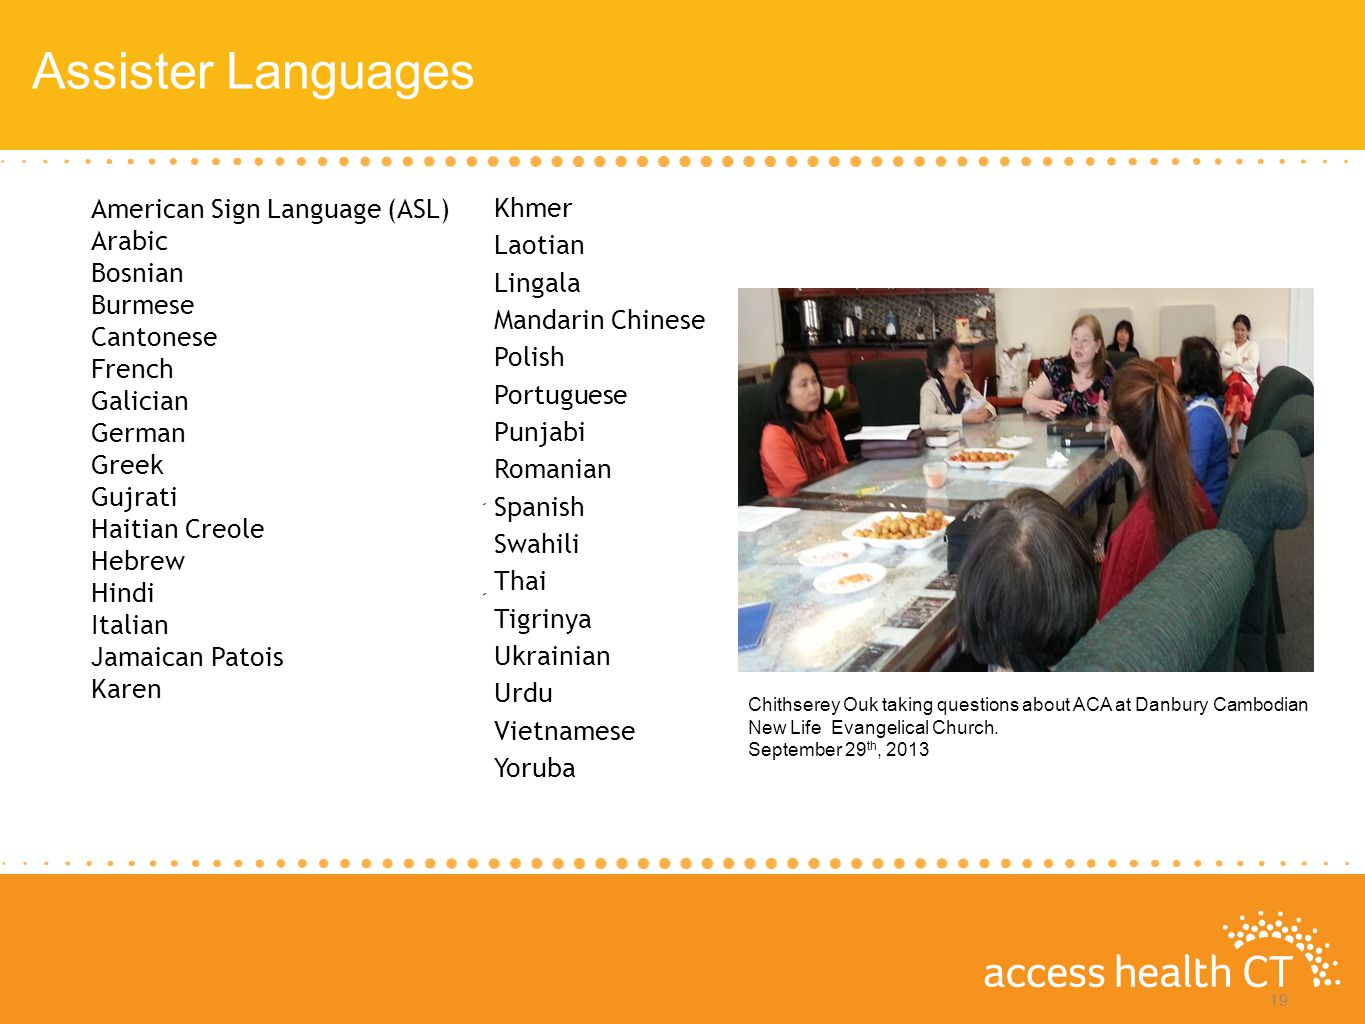 Assister Languages up to $15,856 up to $45,960 up to $43,567 up to $94,200 19 American Sign Language (ASL) Arabic Bosnian Burmese Cantonese French Galician German Greek Gujrati Haitian Creole Hebrew Hindi Italian Jamaican Patois Karen Khmer Laotian Lingala Mandarin Chinese Polish Portuguese Punjabi Romanian Spanish Swahili Thai Tigrinya Ukrainian Urdu Vietnamese Yoruba Chithserey Ouk taking questions about ACA at Danbury Cambodian New Life Evangelical Church.